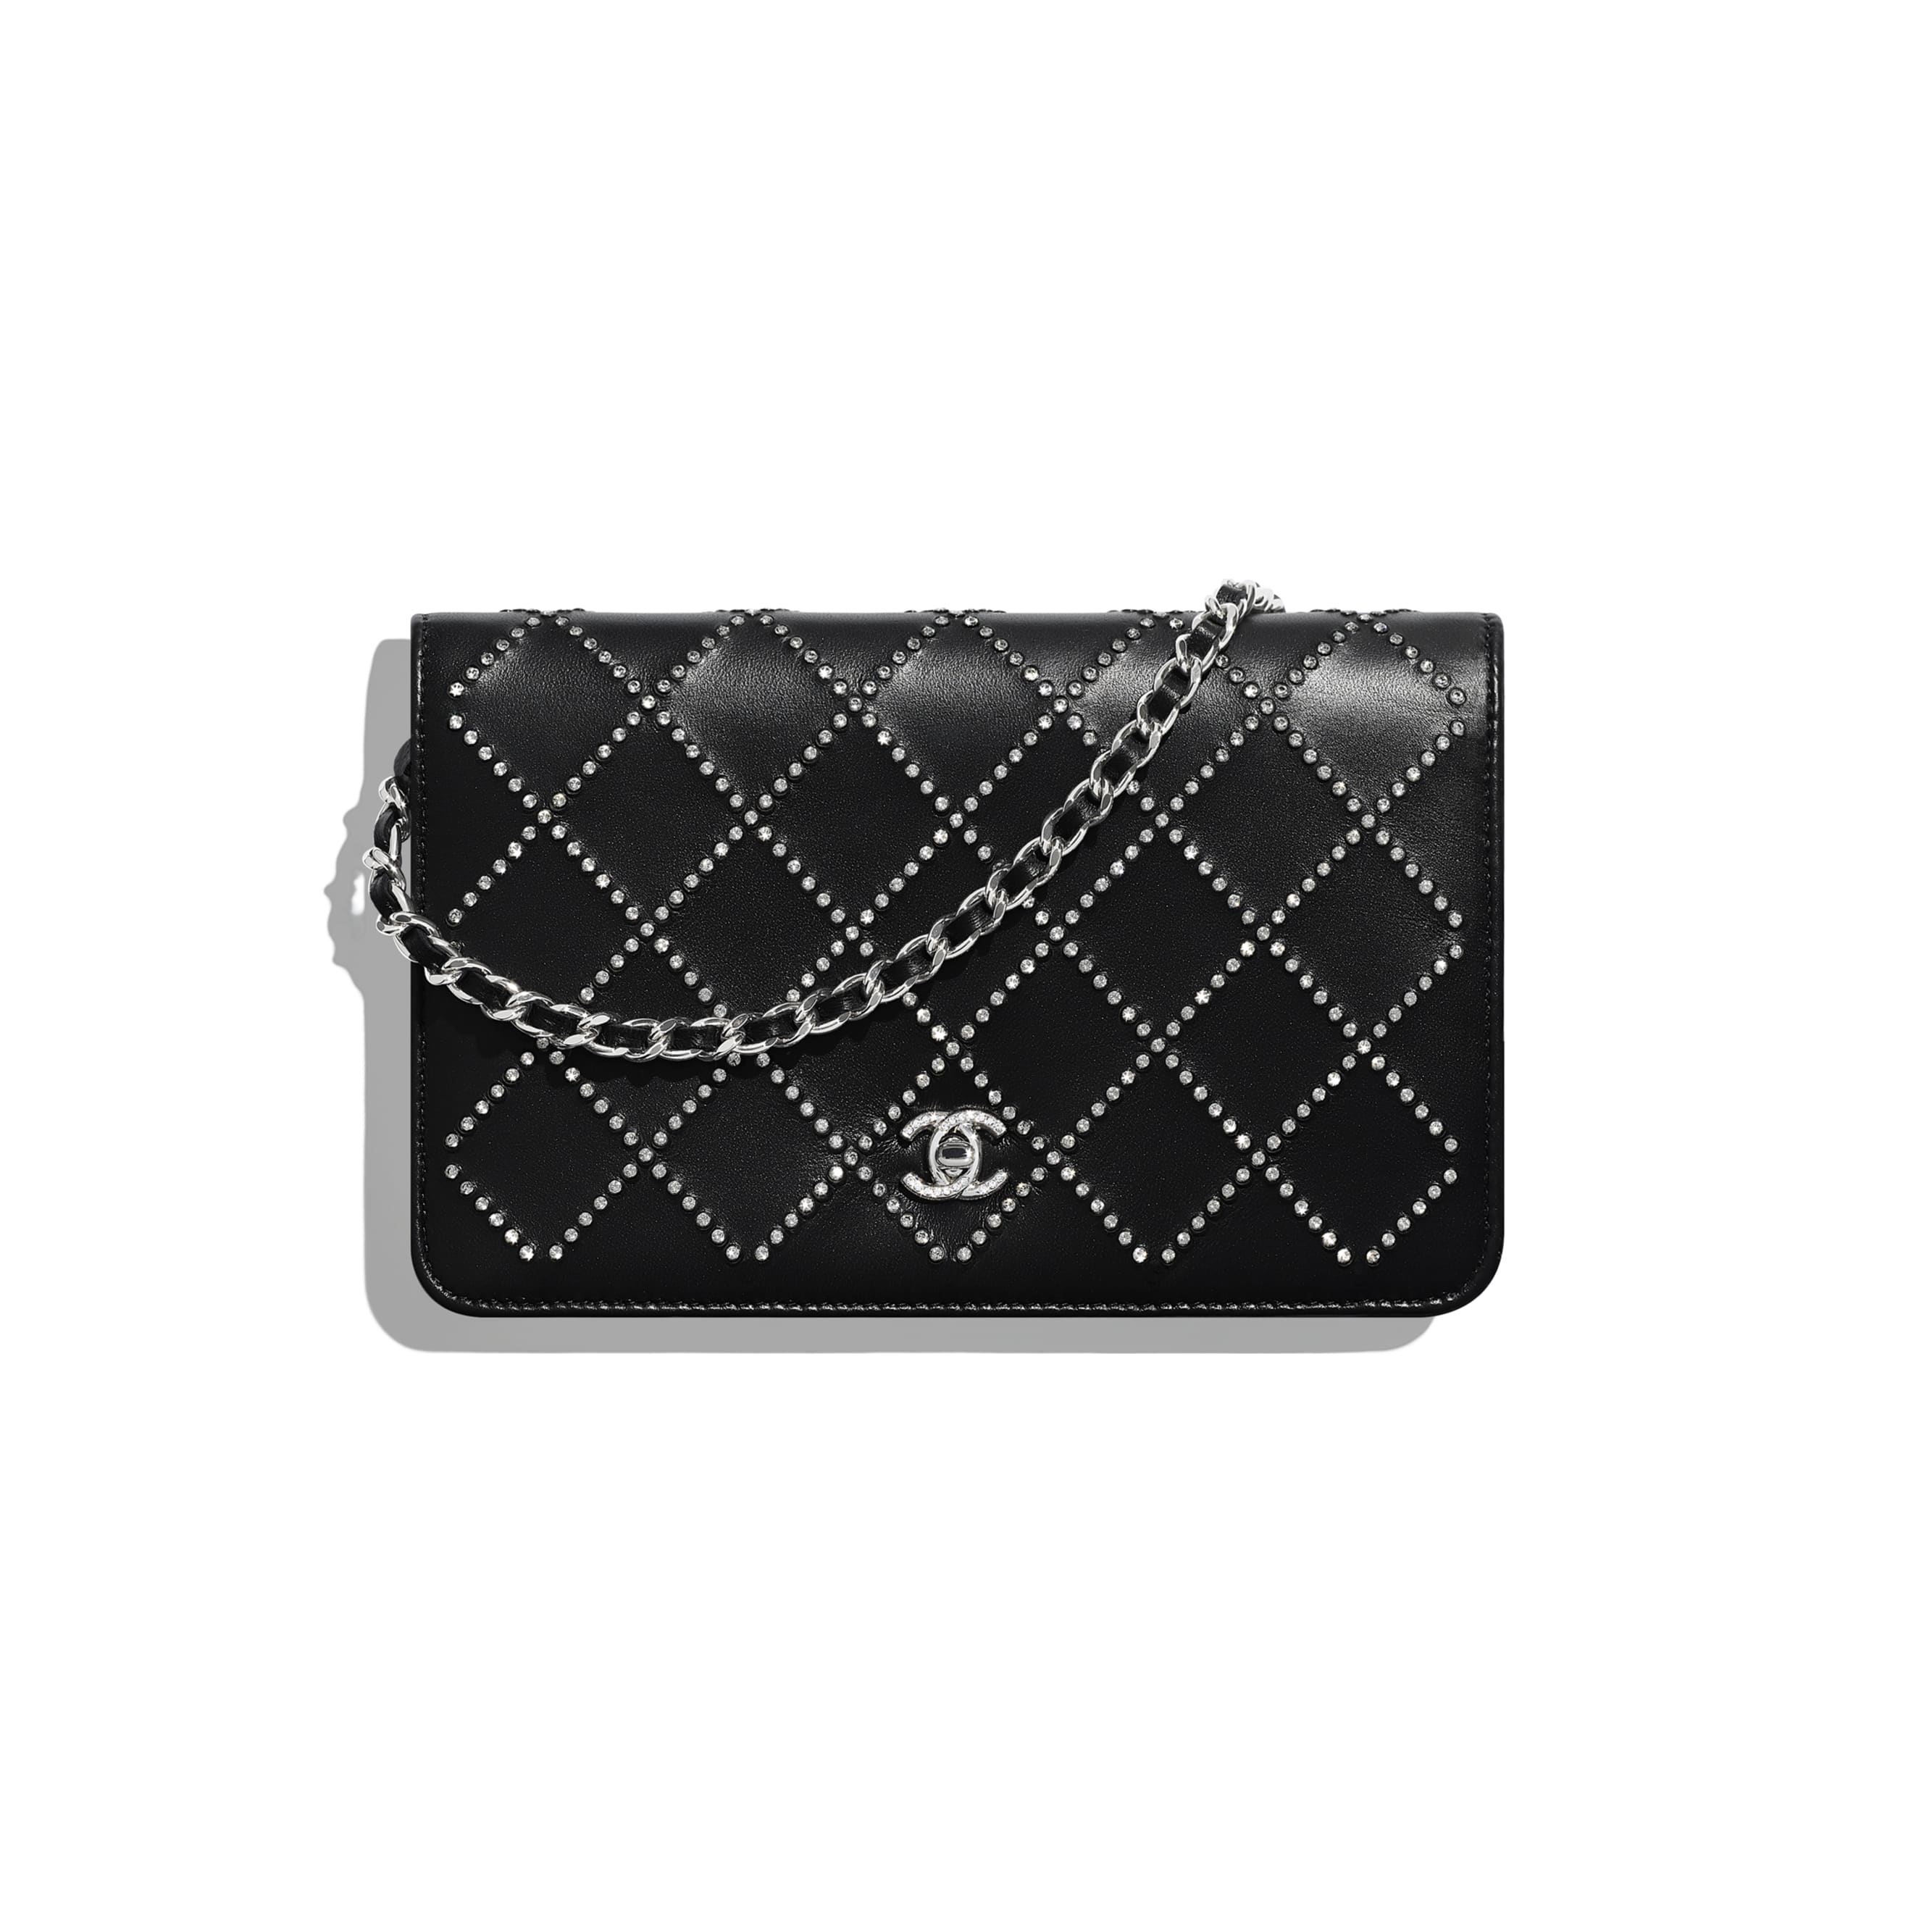 Wallet On Chain - Black - Iridescent Lambskin, Strass & Silver-Tone Metal - Default view - see standard sized version